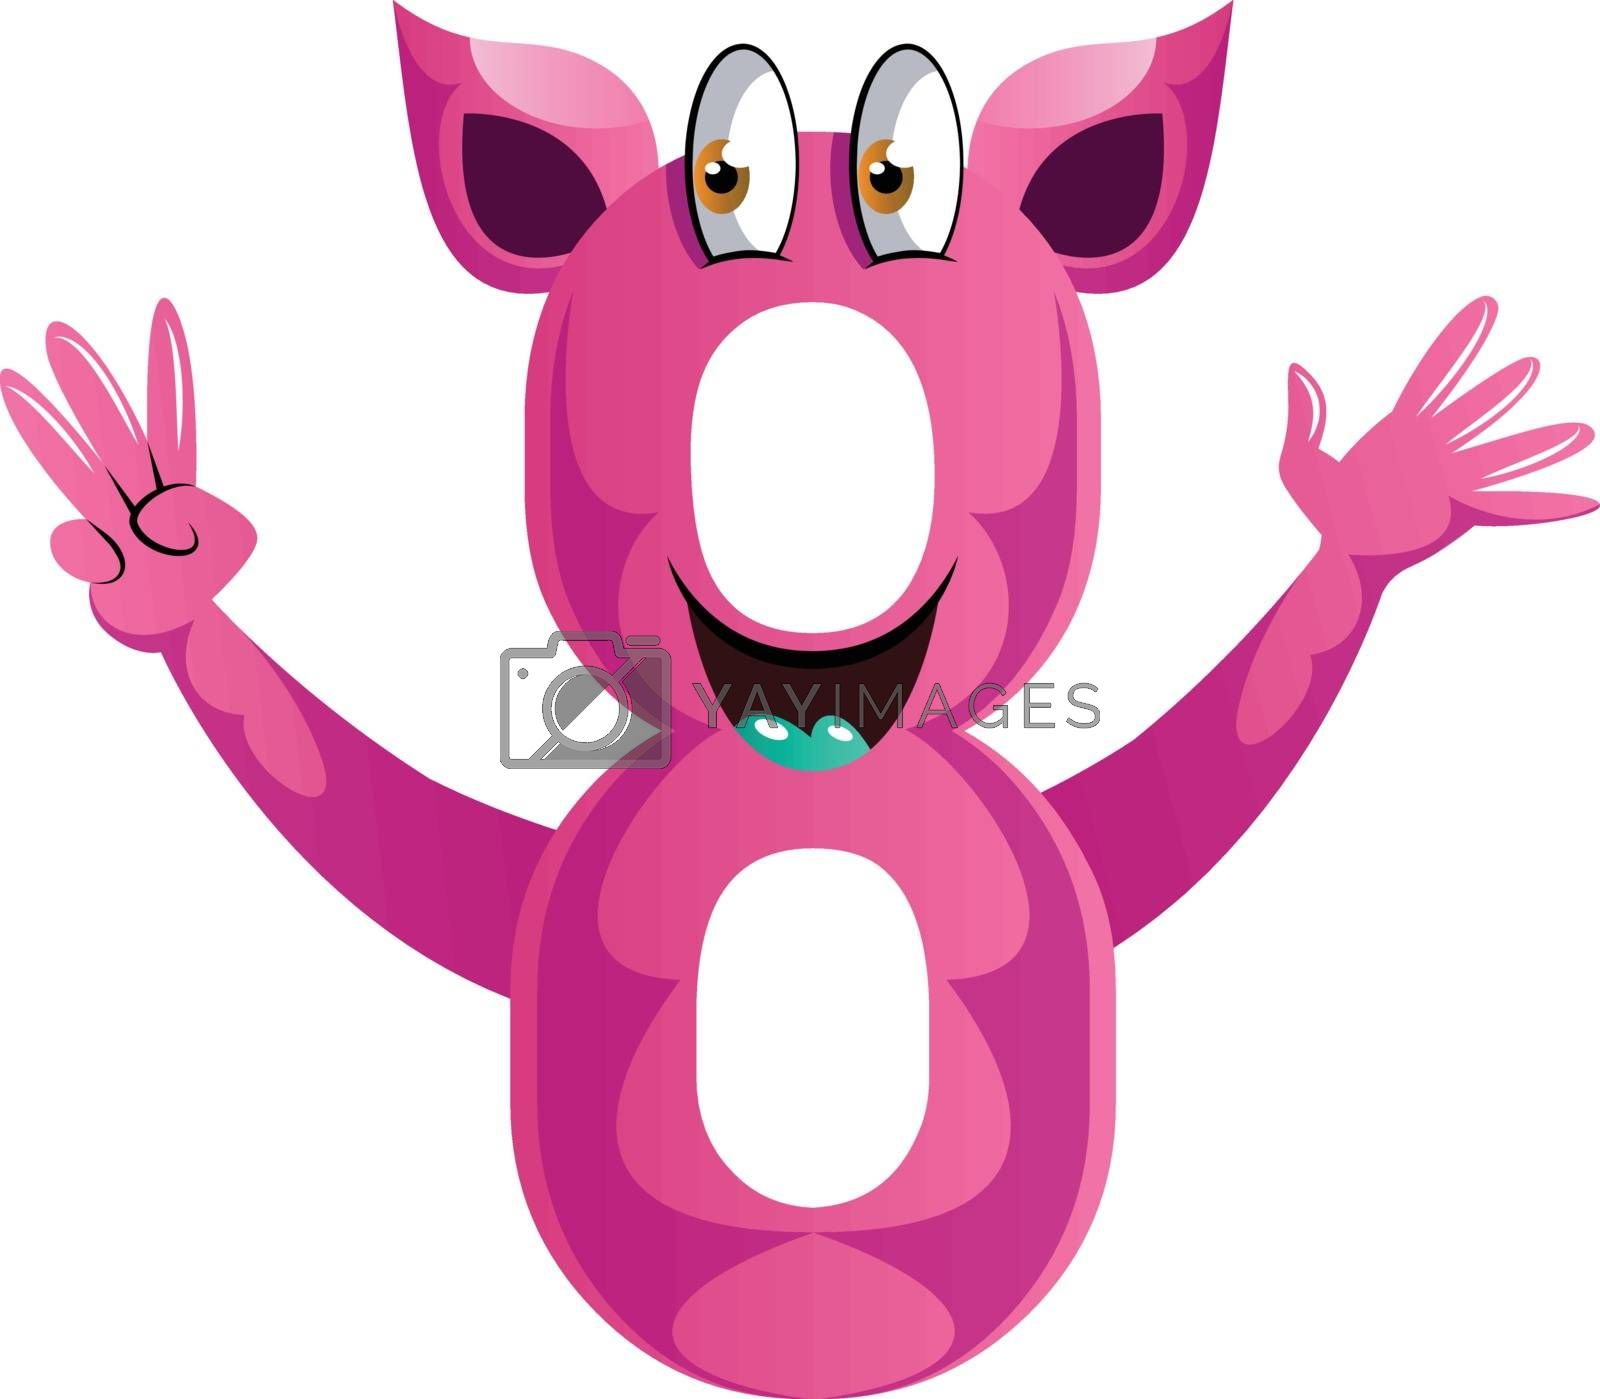 Royalty free image of Pink monster in number eight shape with hands up illustration ve by Morphart